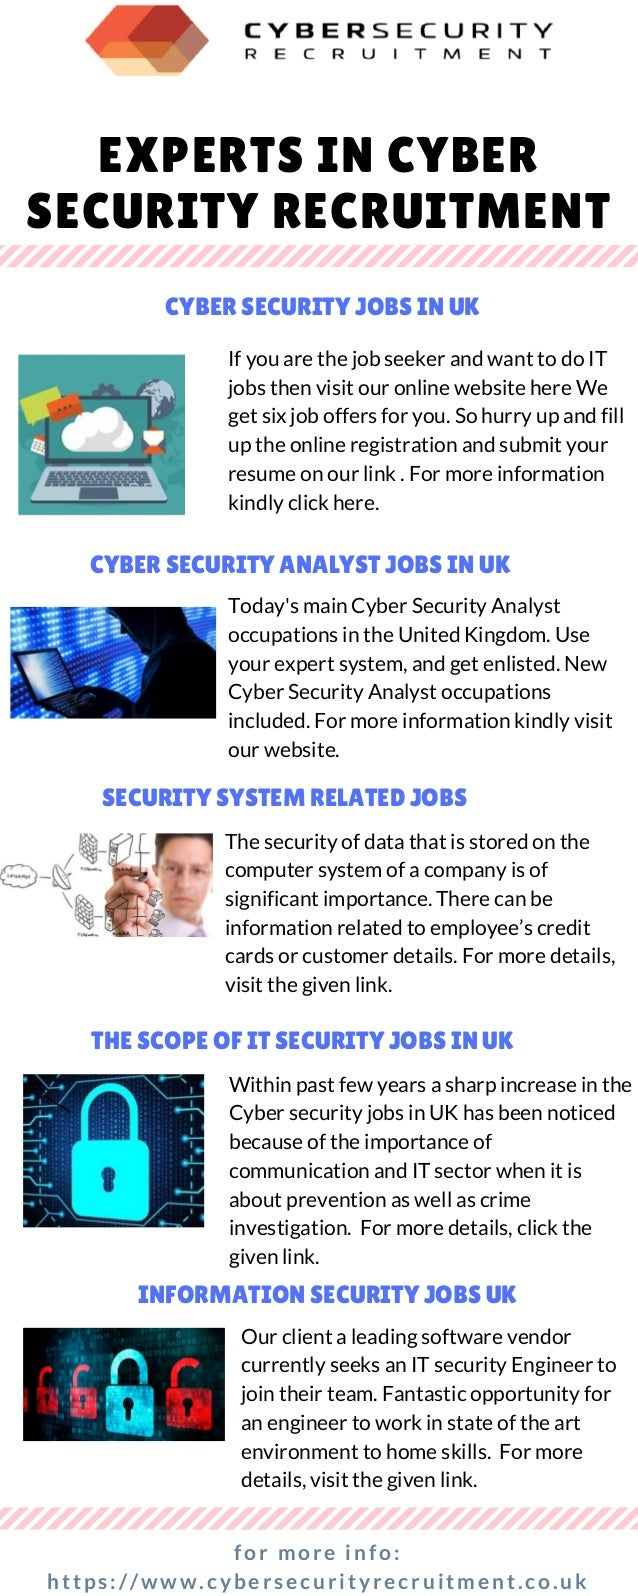 Experts in cyber security recruitment